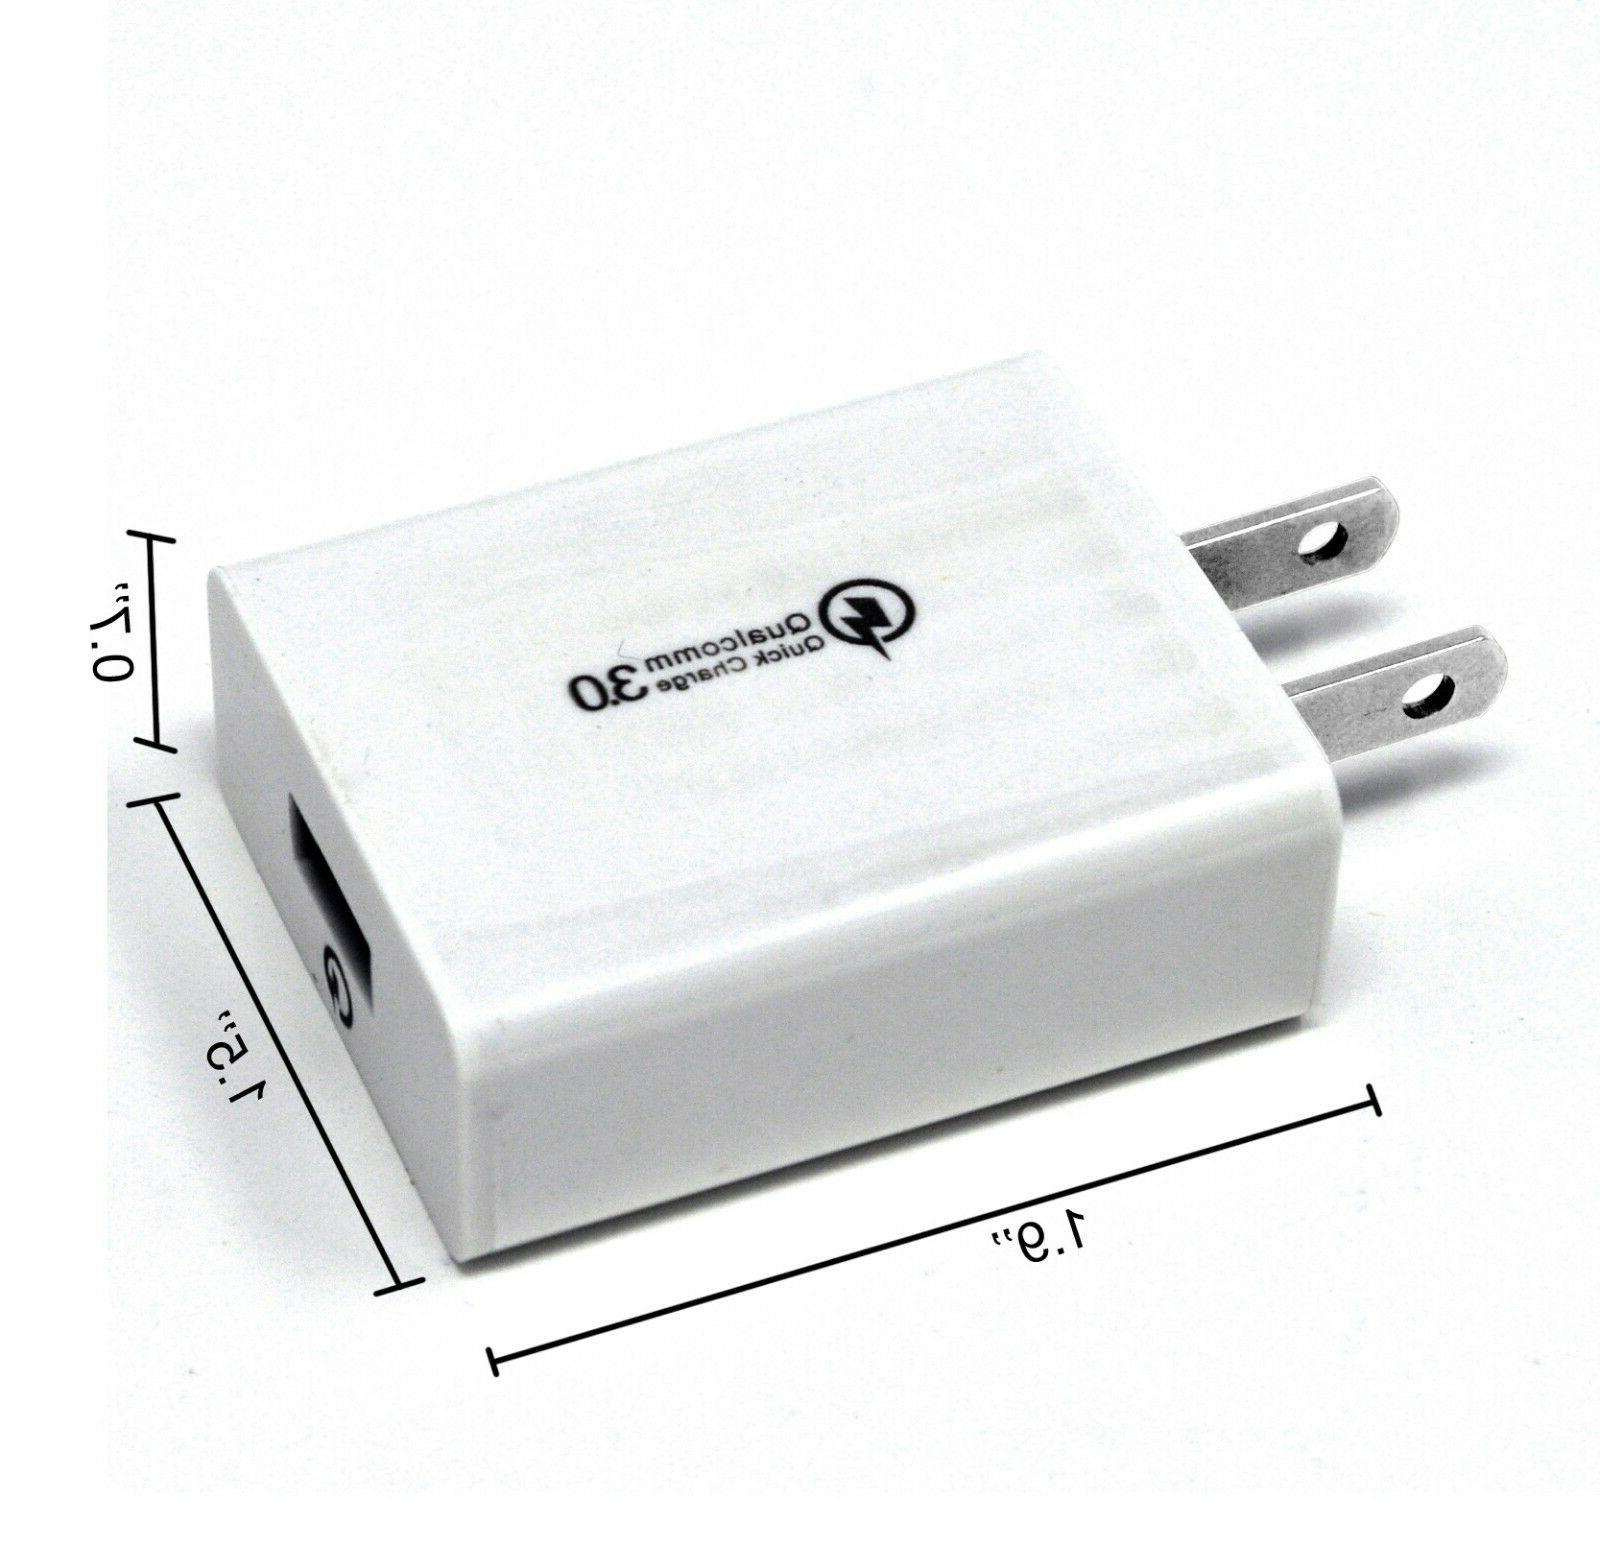 USB Quick Charger Adapter or